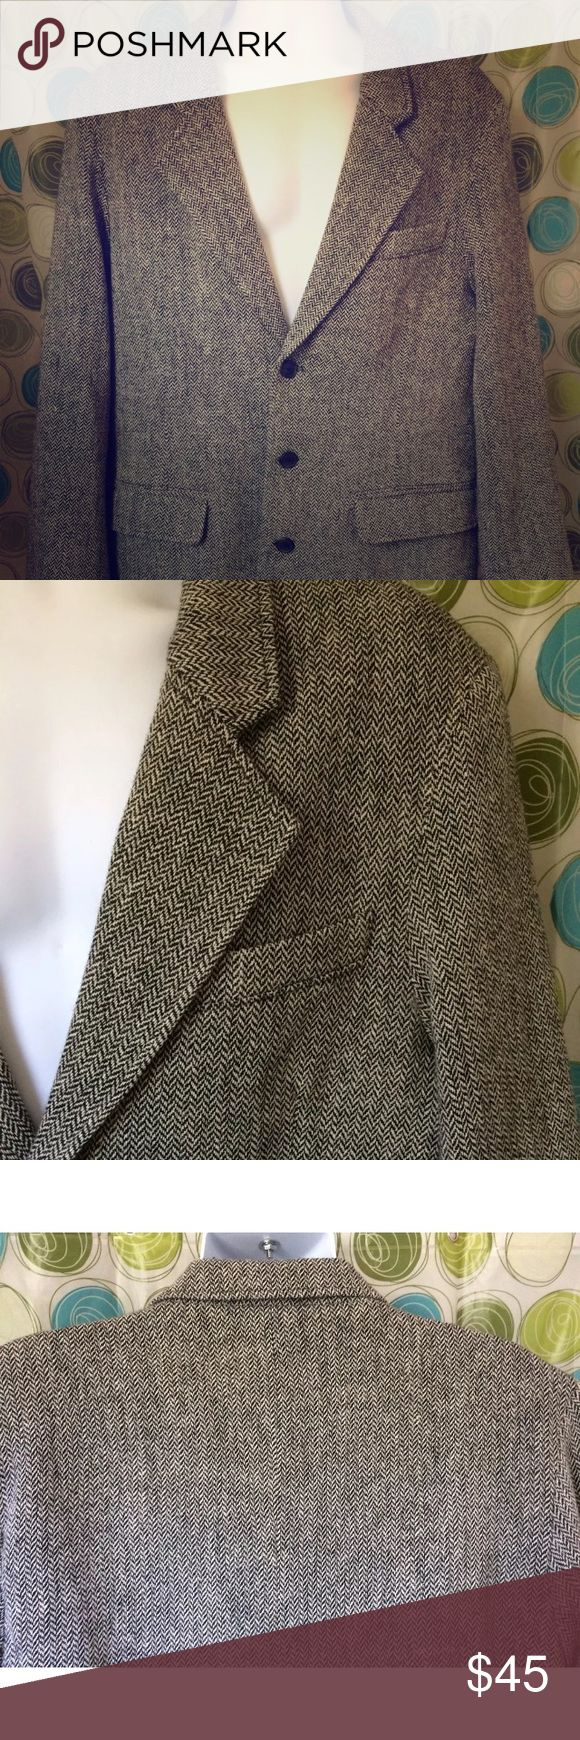 THE TERRITORY AHEAD Mens wool Blazer herringbone L Gorgeous Territory Ahead classic Herringbone tweed jacket  3 button style  Excellent like new condition  Size Large (40-42)  No issues with outside or lining. The Territory Ahead Suits & Blazers Sport Coats & Blazers